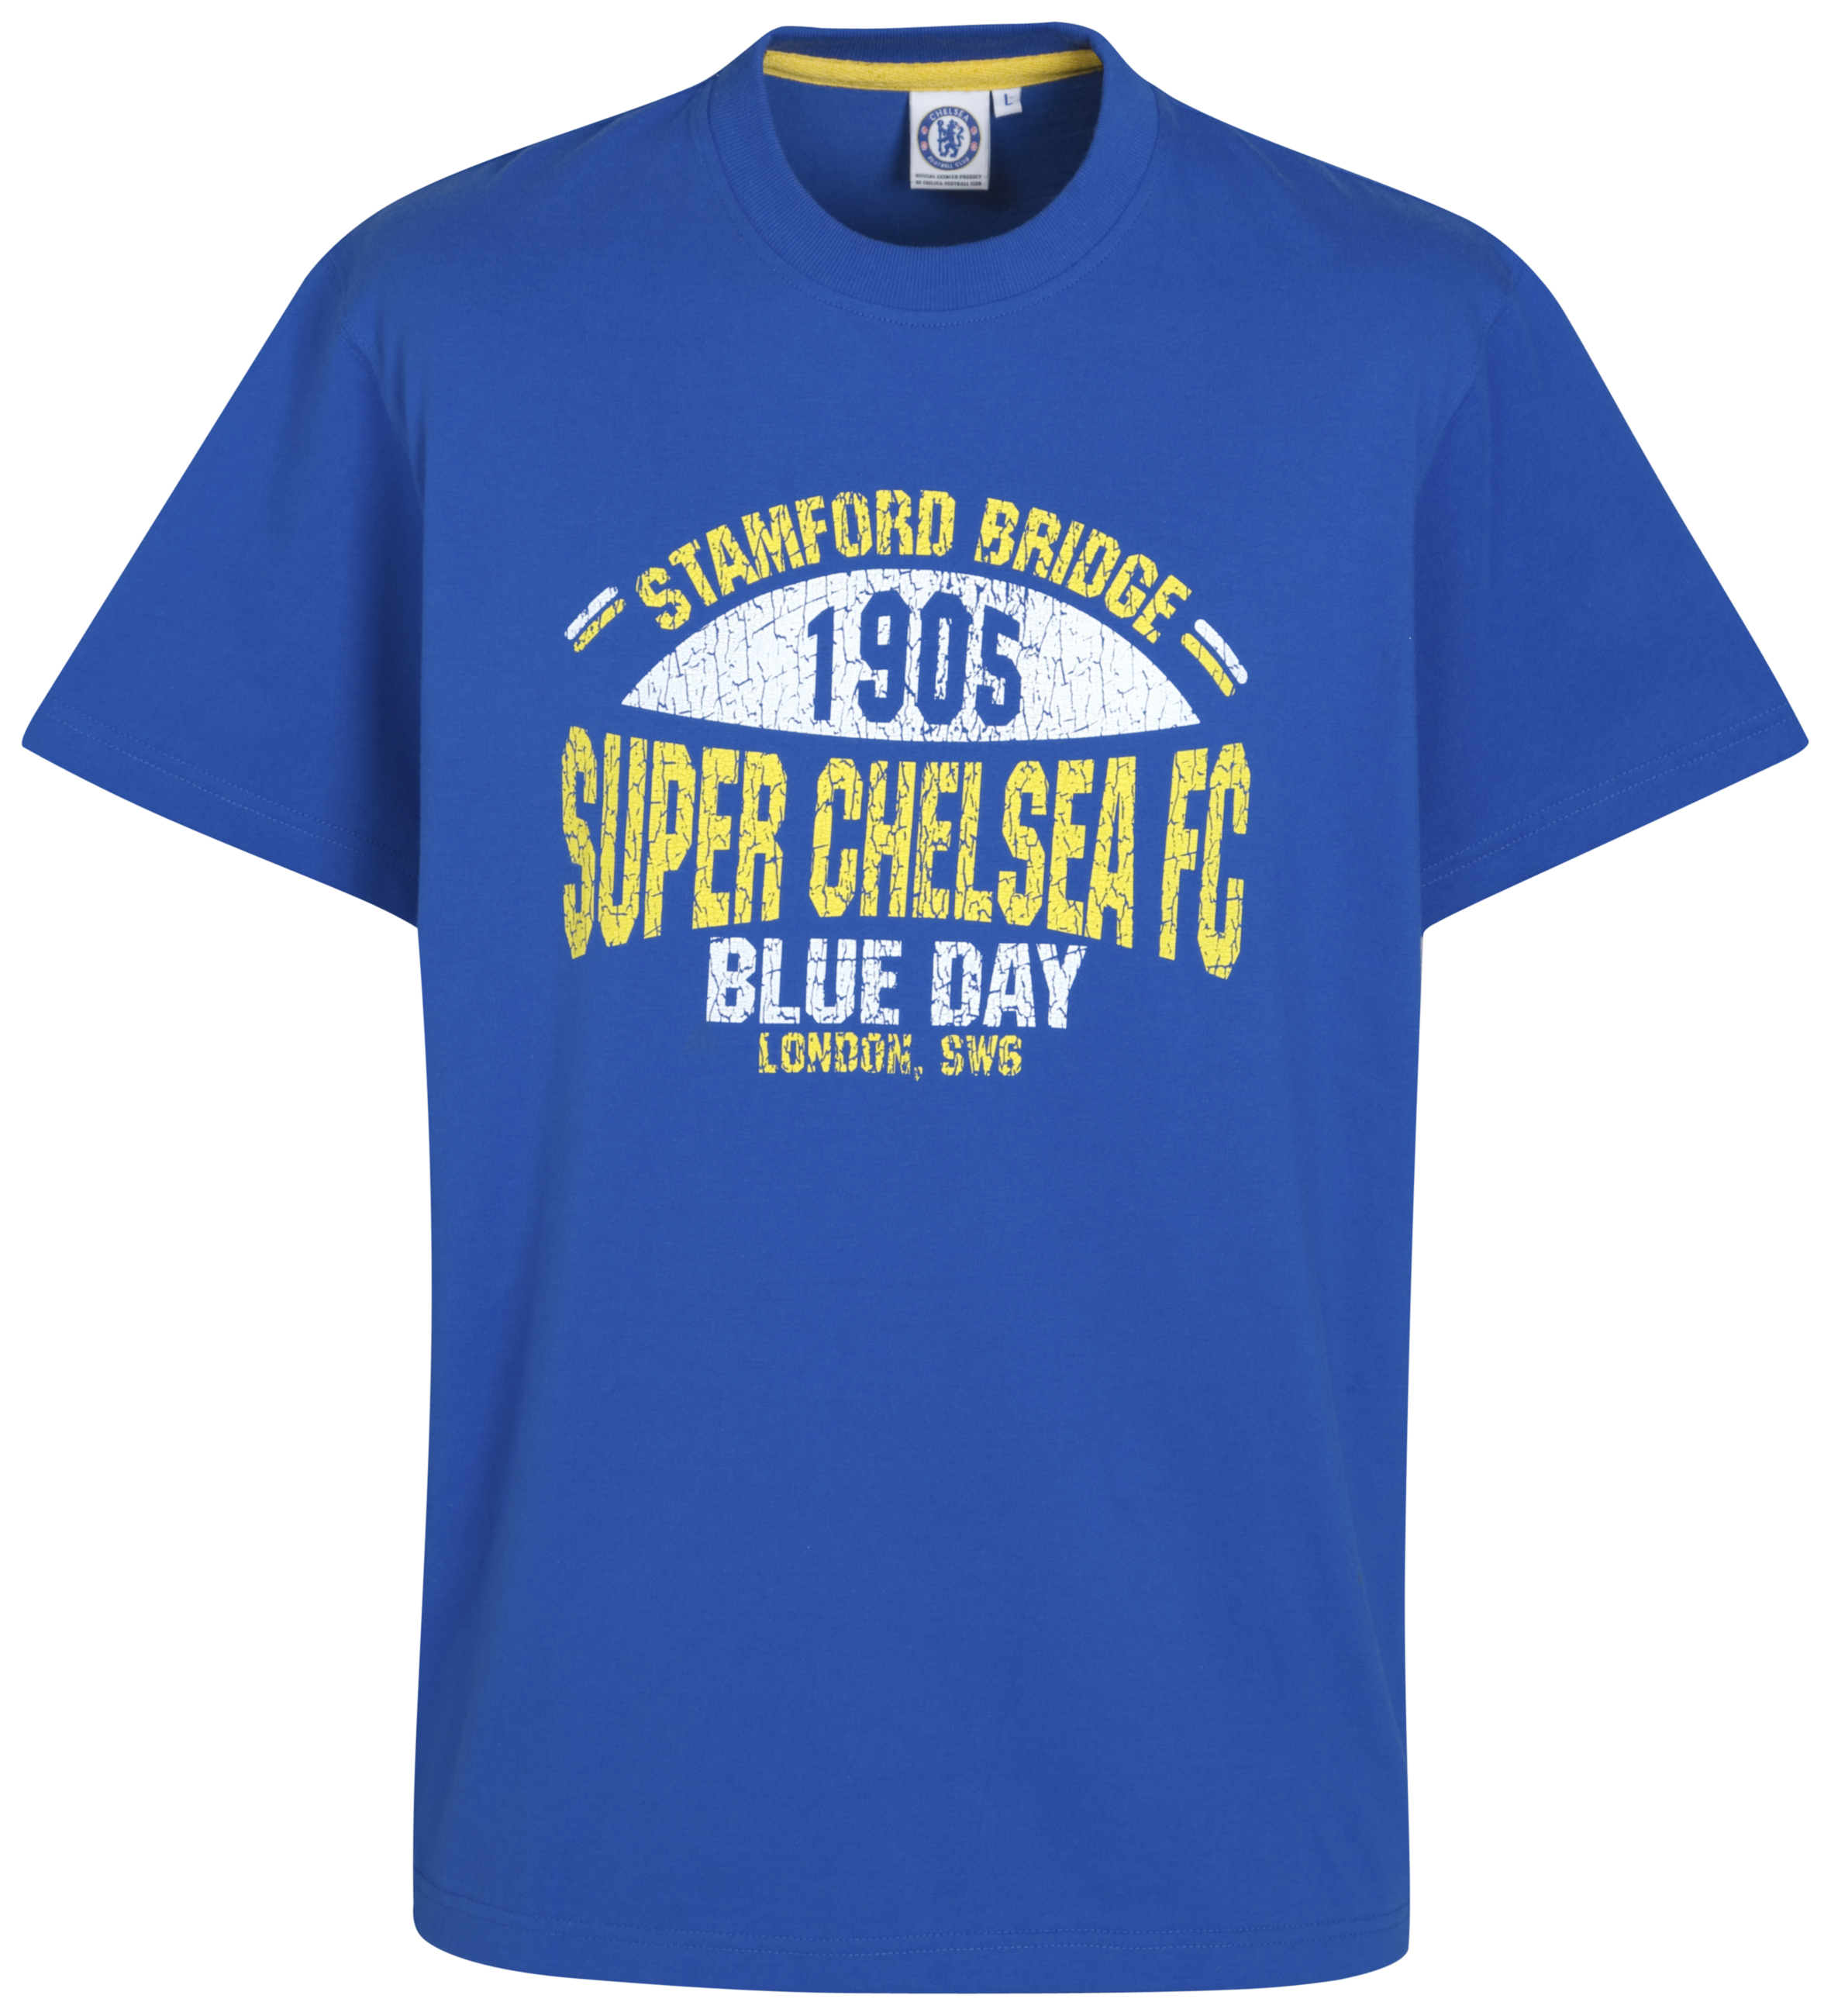 Chelsea Super Chelsea retro Graphic T Shirt Reflex Blue